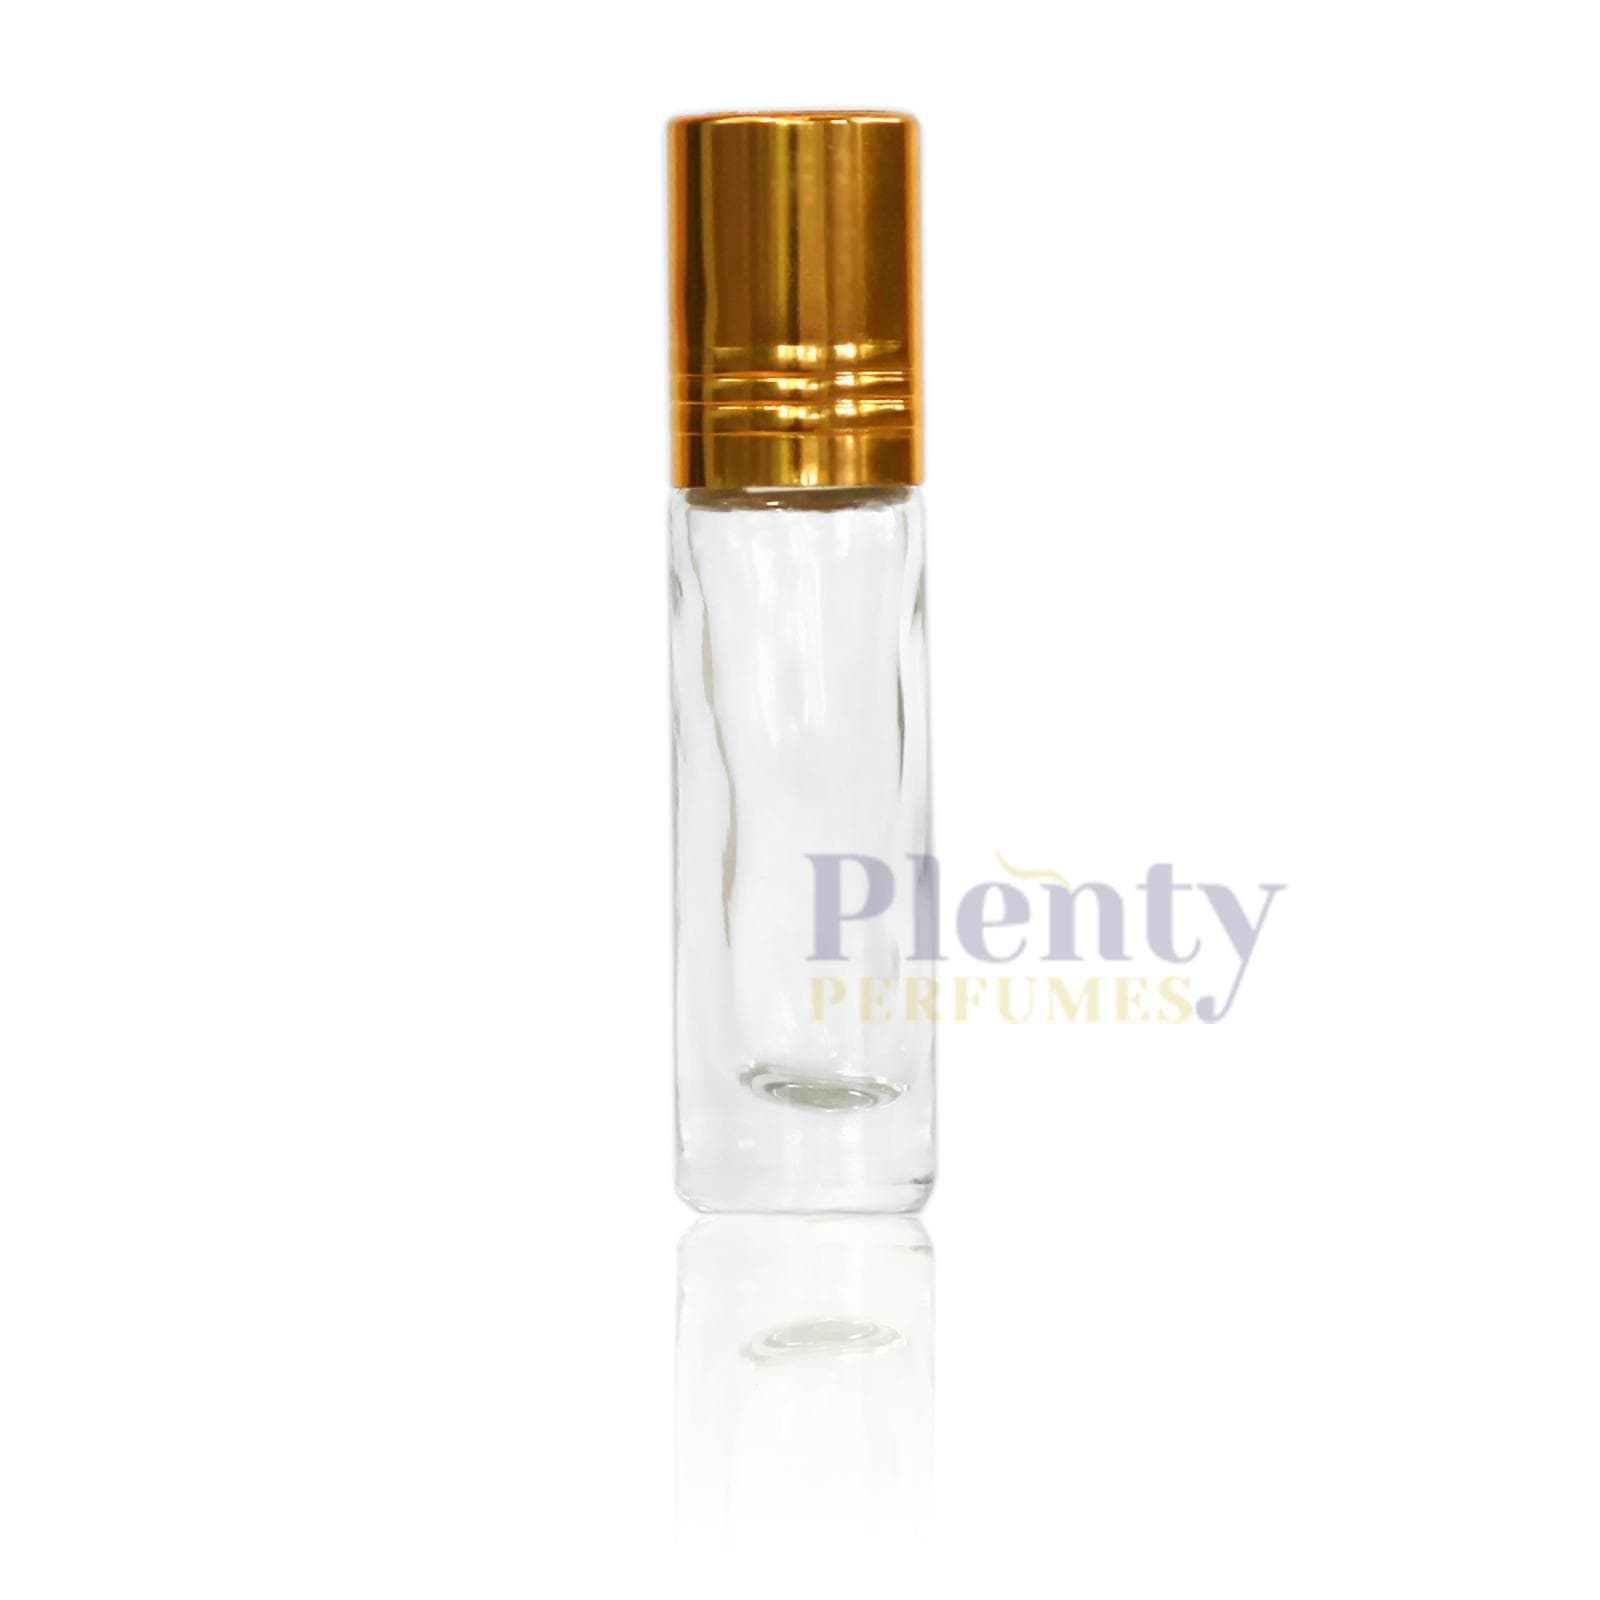 Ceanema By Swiss Arabian Perfume Oil - Plenty Perfumes